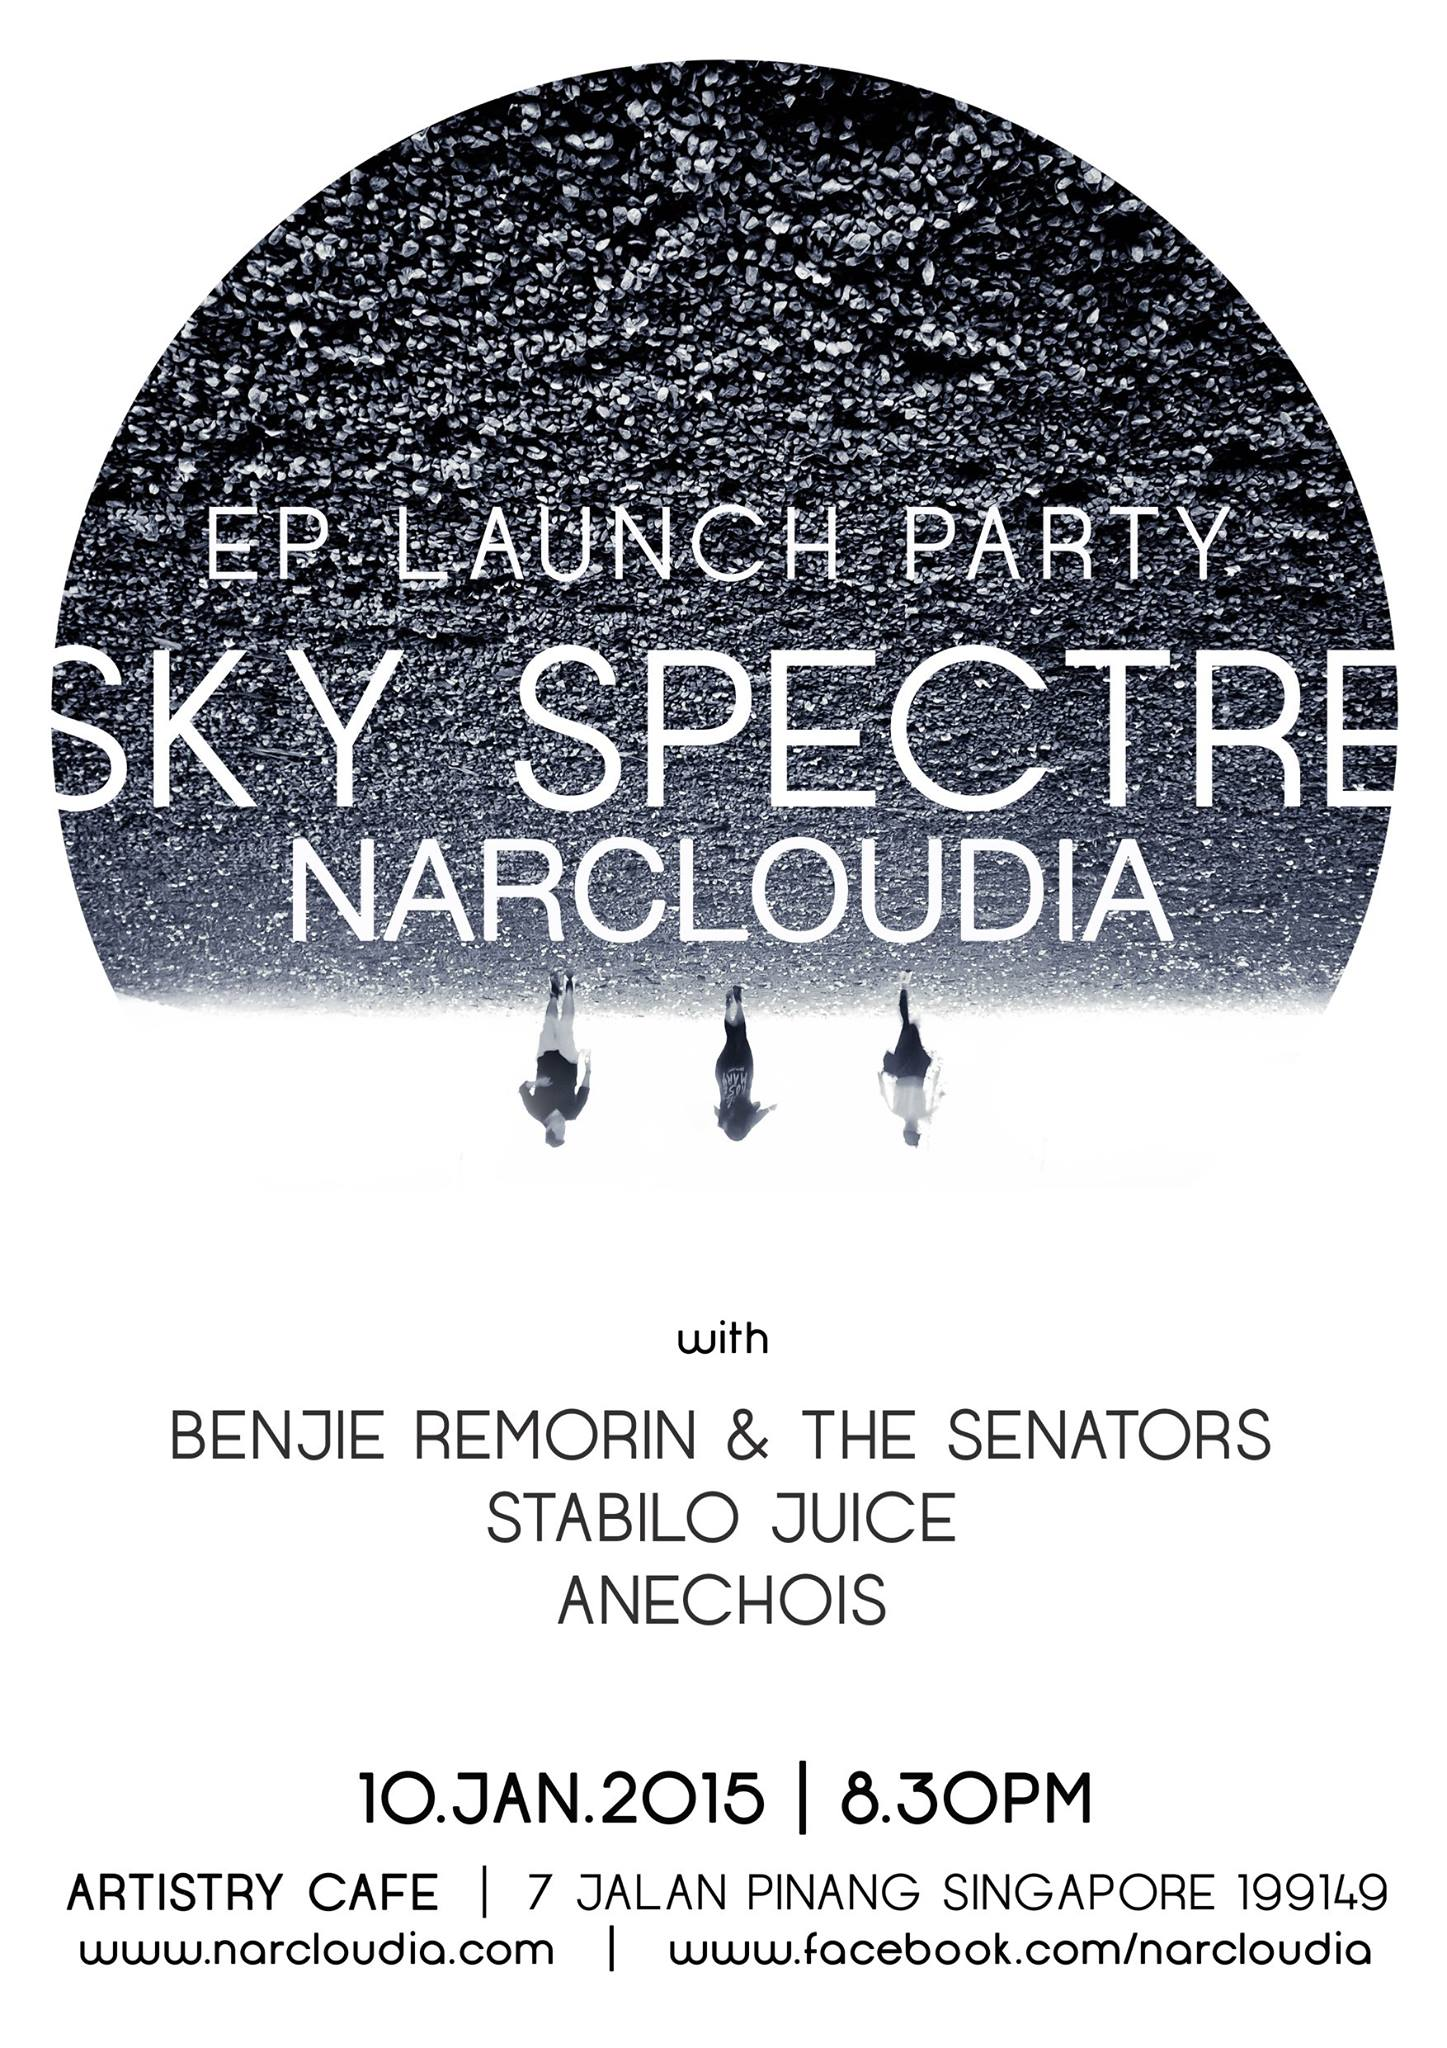 Sky Spectre Narcloudia EP Launch Party